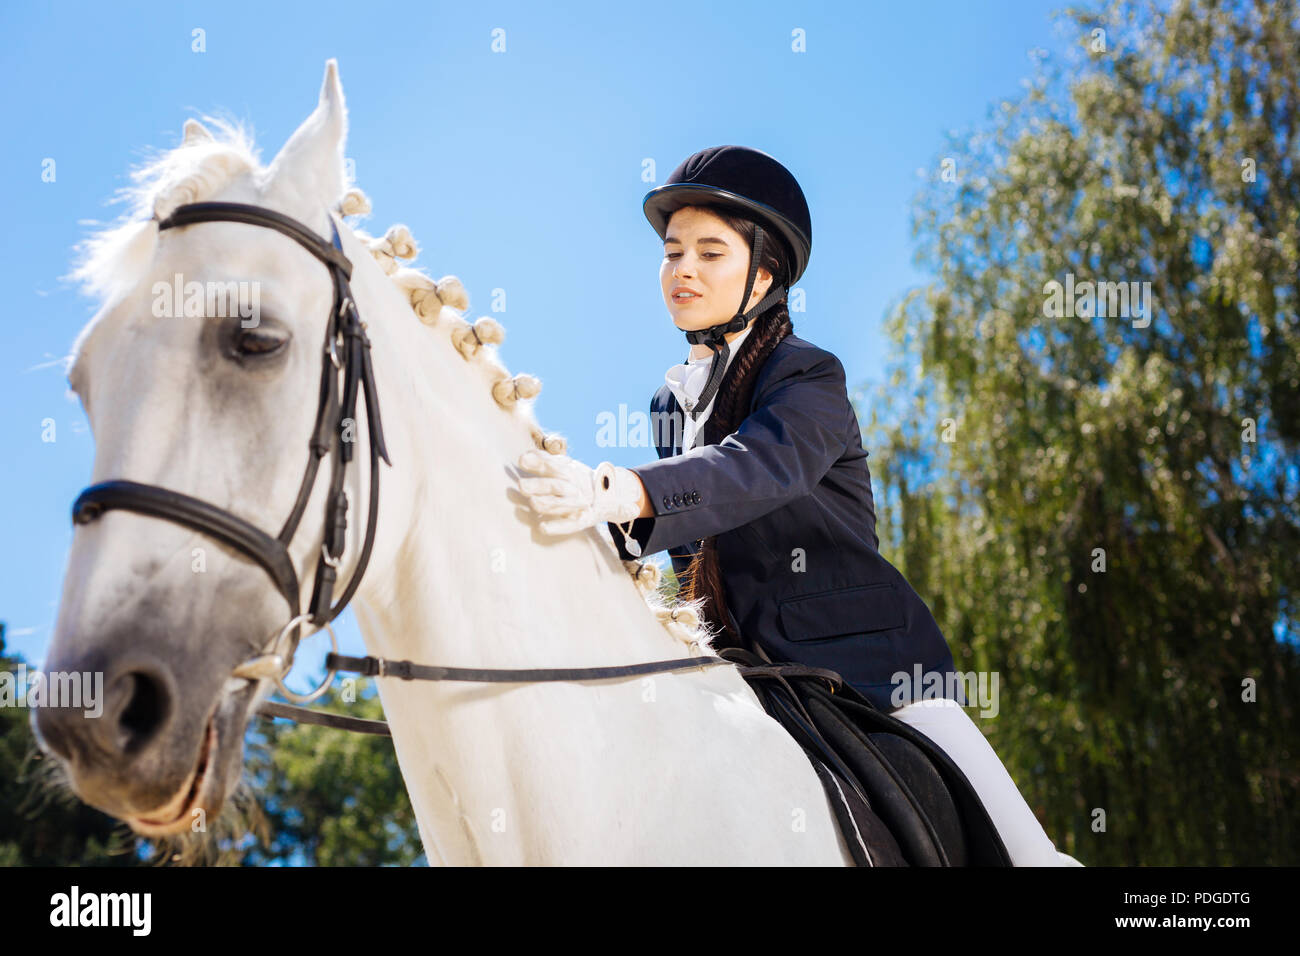 Loving horsewoman petting her gentle white horse - Stock Image